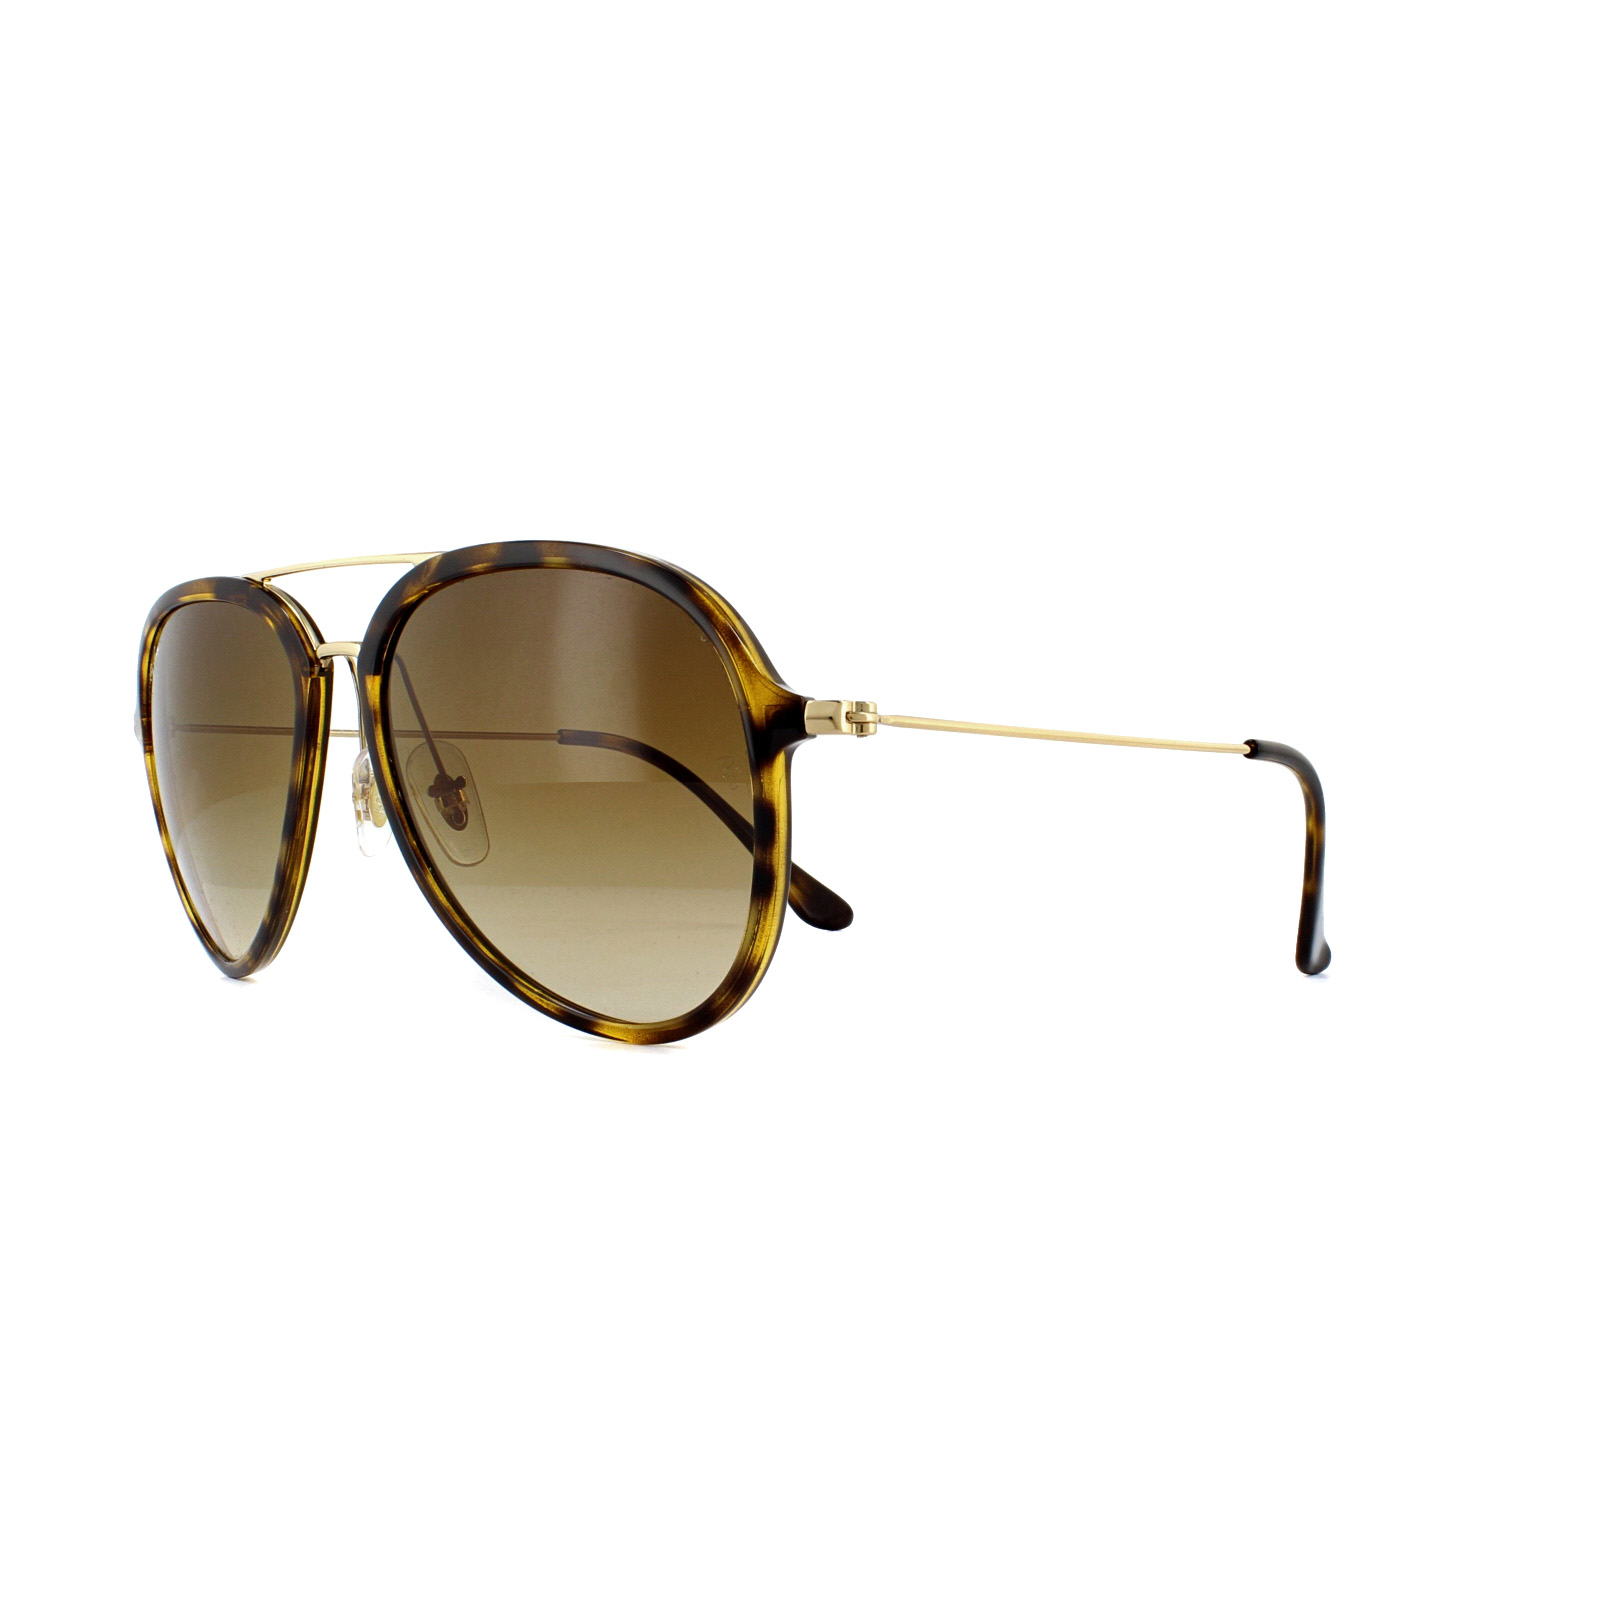 Sentinel Ray-Ban Sunglasses RB4298 710 51 Light Havana Crystal Brown  Gradient 589ea18b2c